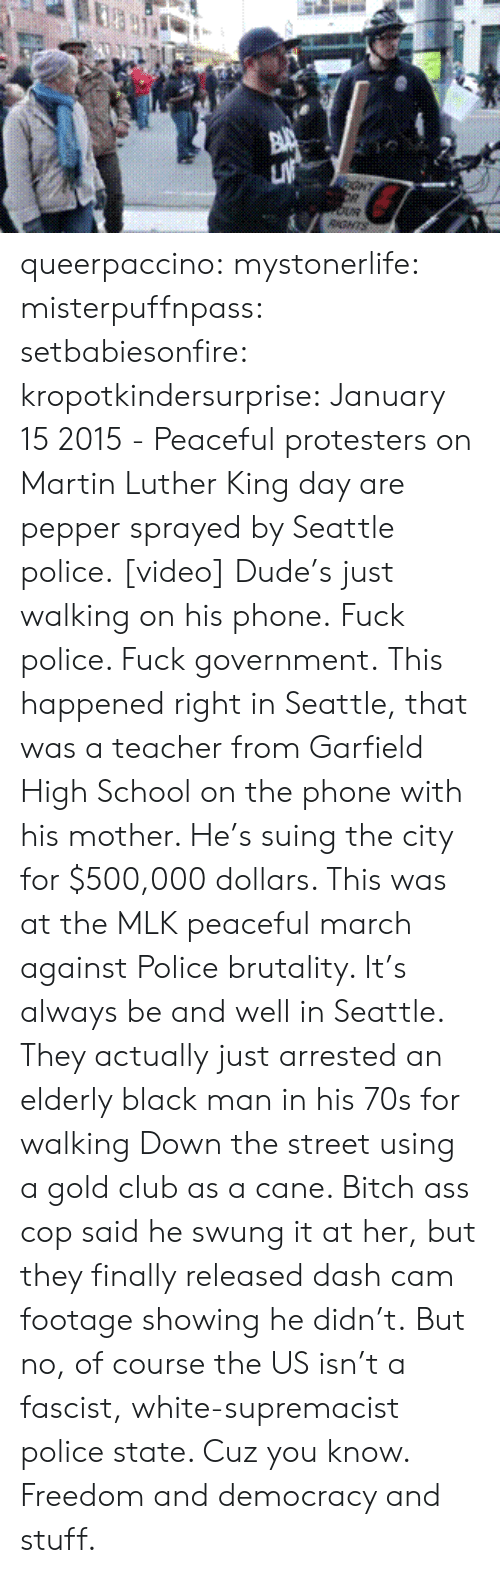 Ass, Bitch, and Club: GHT  RGNTS queerpaccino: mystonerlife:  misterpuffnpass:  setbabiesonfire:  kropotkindersurprise: January 15 2015 - Peaceful protesters on Martin Luther King day are pepper sprayed by Seattle police. [video] Dude's just walking on his phone.  Fuck police. Fuck government.  This happened right in Seattle, that was a teacher from Garfield High School on the phone with his mother. He's suing the city for $500,000 dollars. This was at the MLK peaceful march against Police brutality. It's always be and well in Seattle. They actually just arrested an elderly black man in his 70s for walking Down the street using a gold club as a cane. Bitch ass cop said he swung it at her, but they finally released dash cam footage showing he didn't.  But no, of course the US isn't a fascist, white-supremacist police state. Cuz you know. Freedom and democracy and stuff.